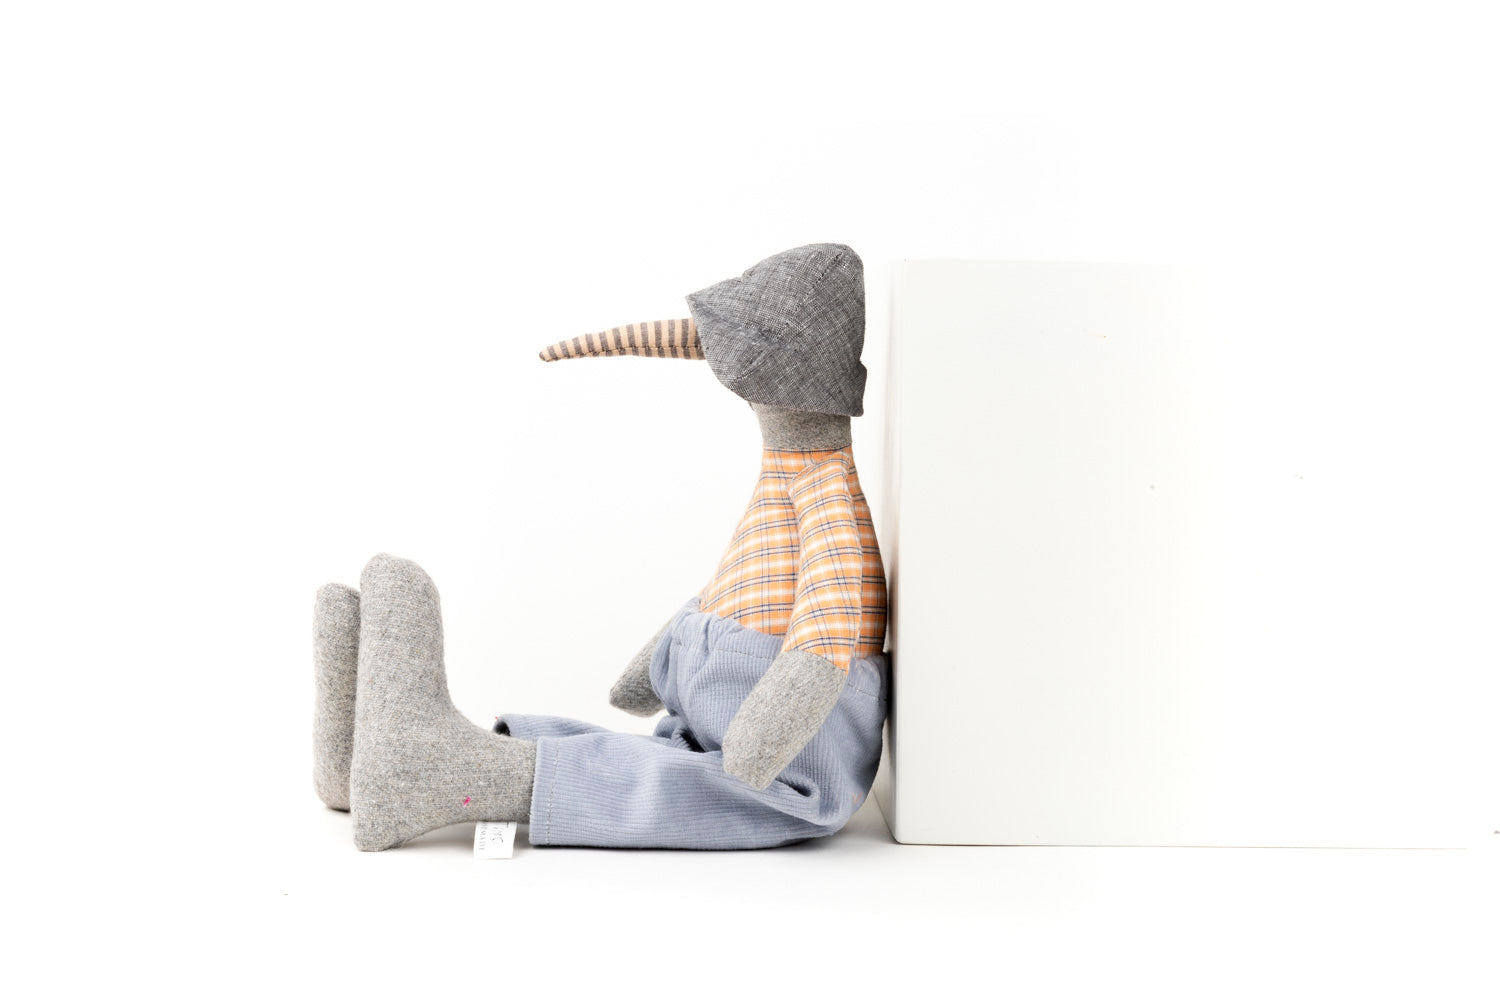 Stuffed animal Gray wool Bird doll Handmade geese Minimalist doll Modern Plush toy Timo handmade Eco toy Gender free doll Heirloom gift